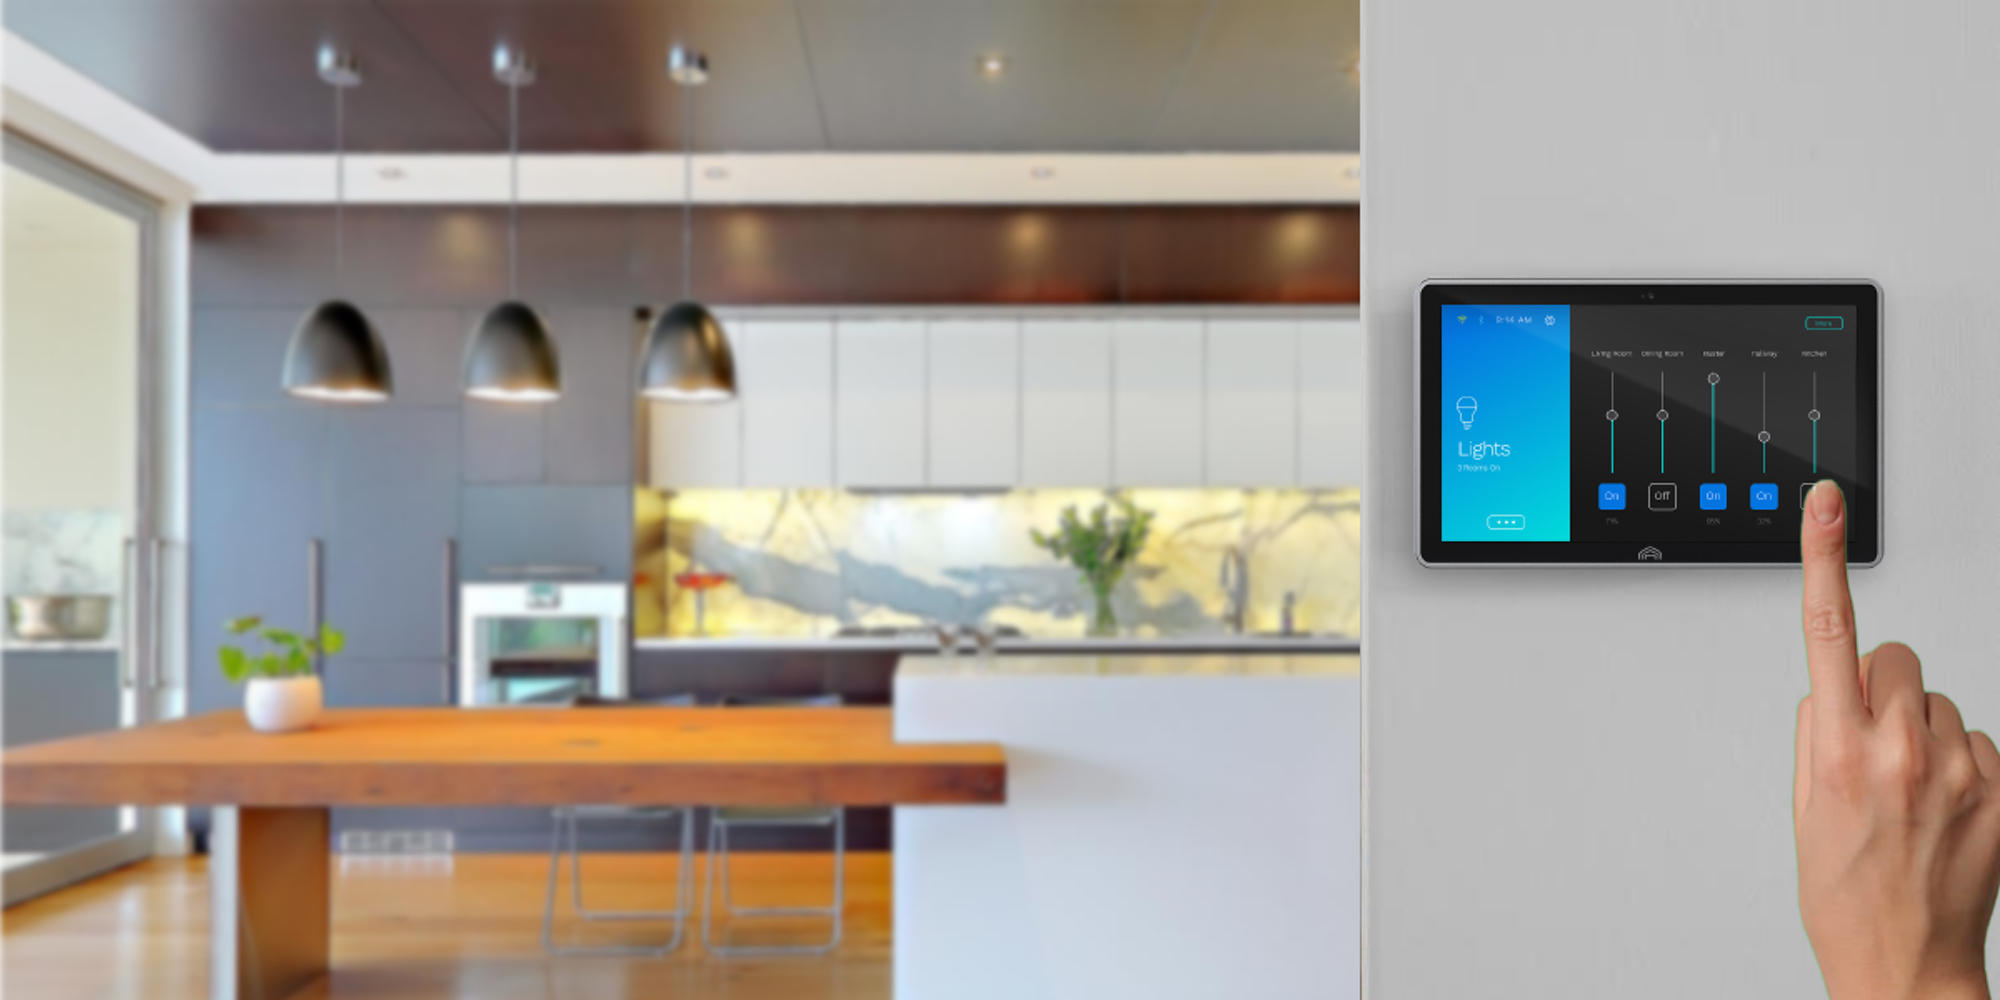 Atmos unifies all of your smart home gadgets around a slick voice-controlled touchscreen hub